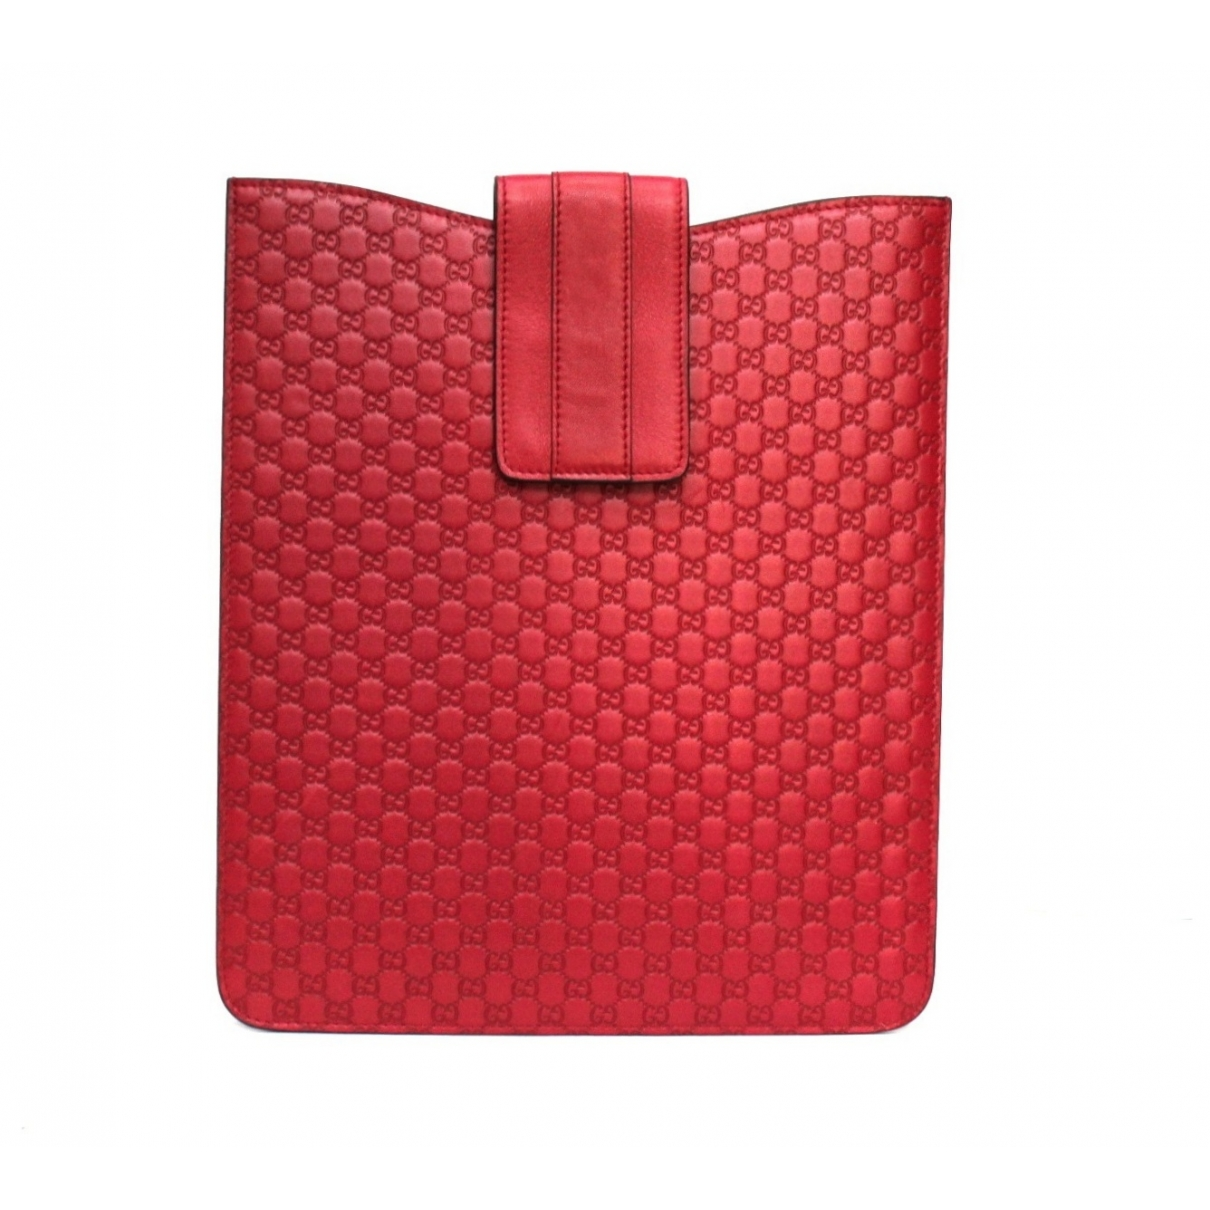 Gucci \N Red Leather Accessories for Life & Living \N